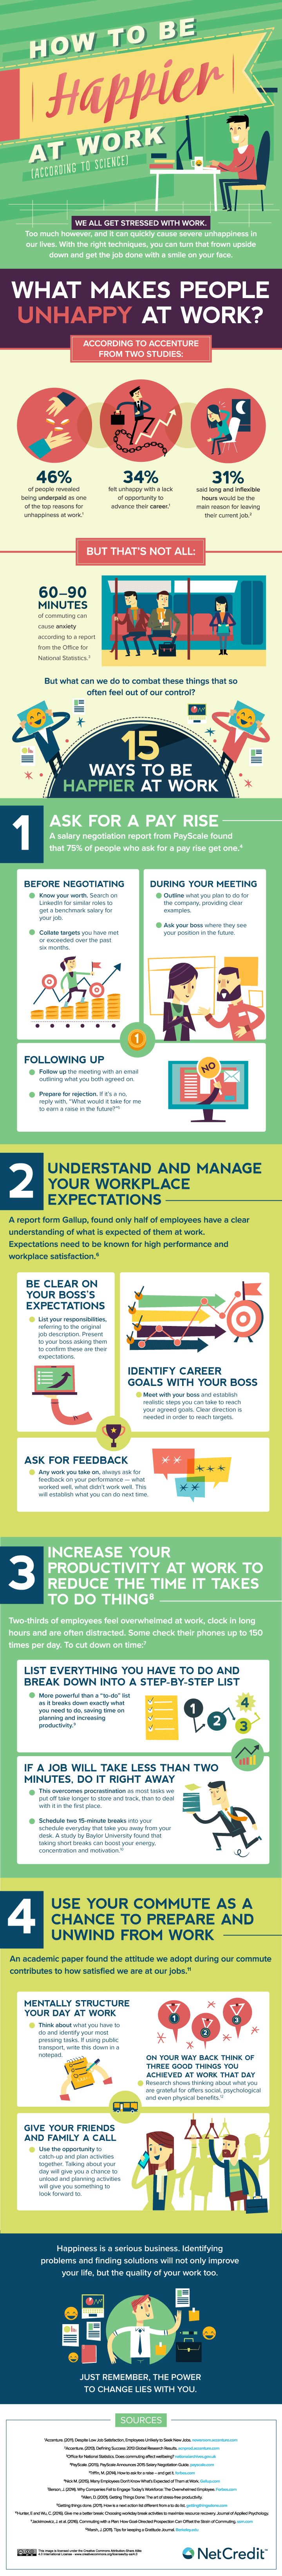 happier at work infographic